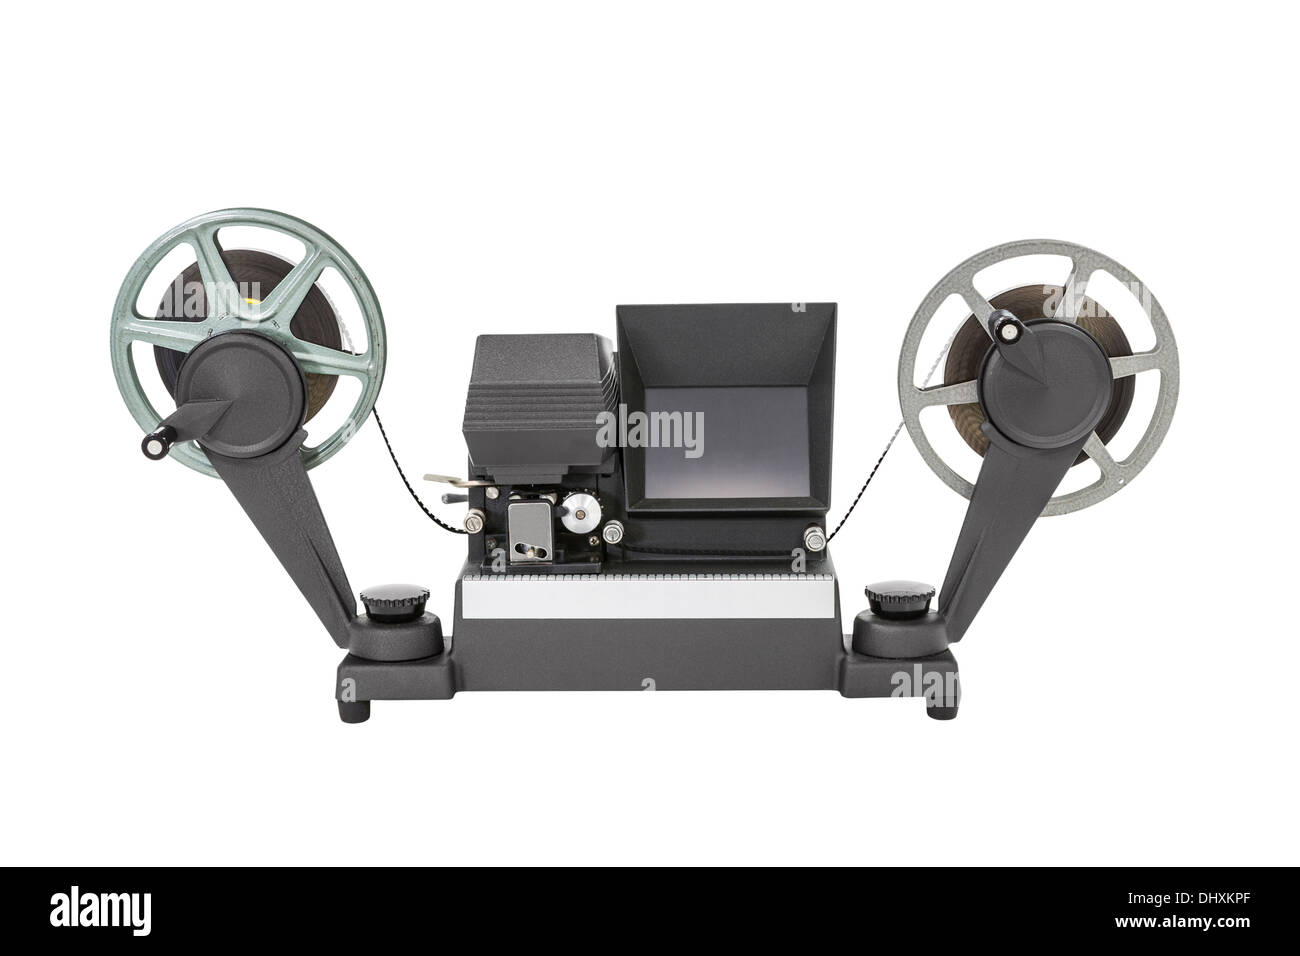 Vintage 8 mm film viewer editor isolated with clipping path. - Stock Image